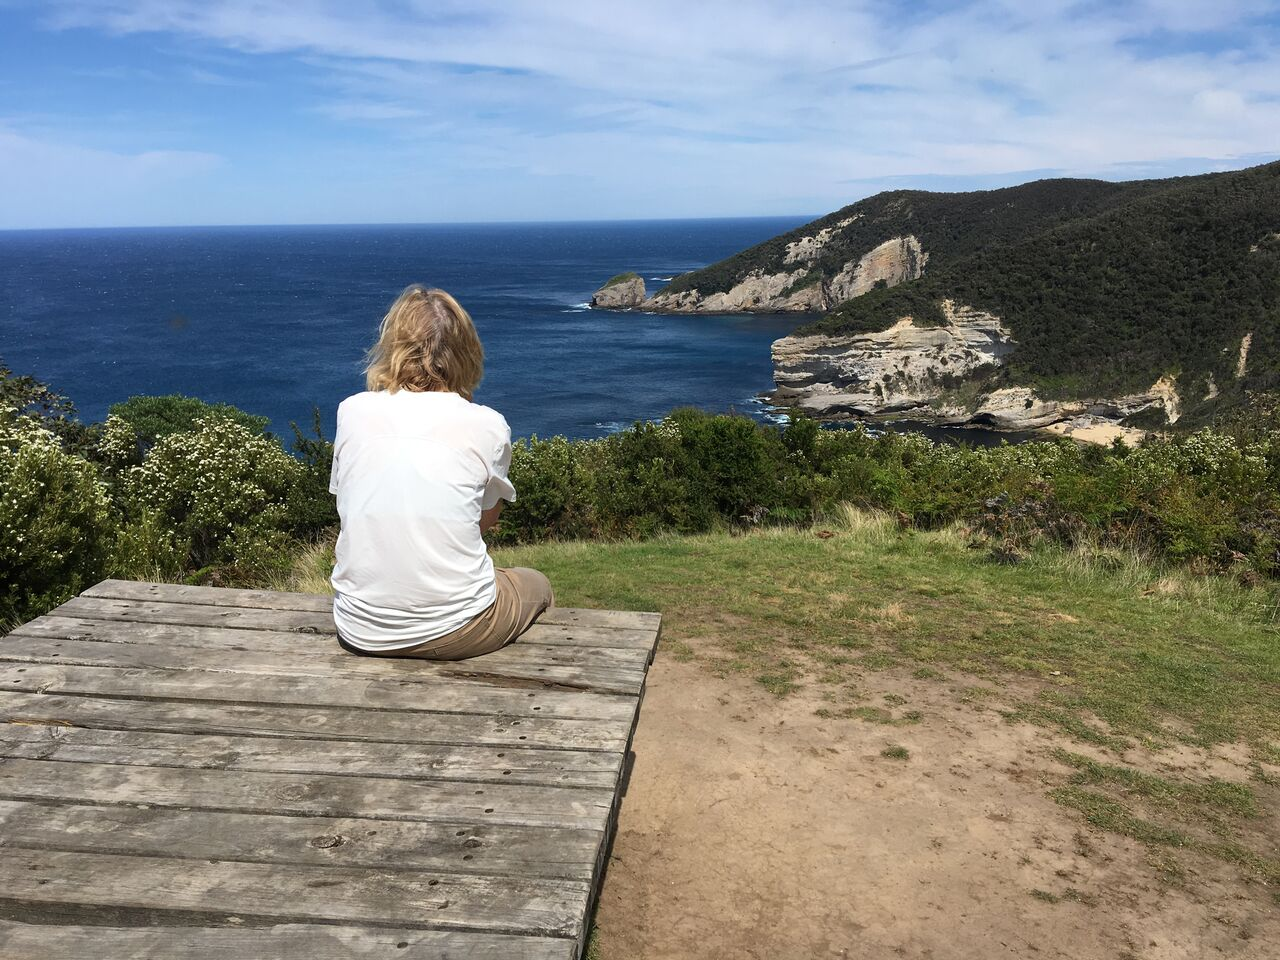 4 Day Self Guided Great Ocean Walk, 71km, 3 Nights, private room, transfers, 12 Apostles